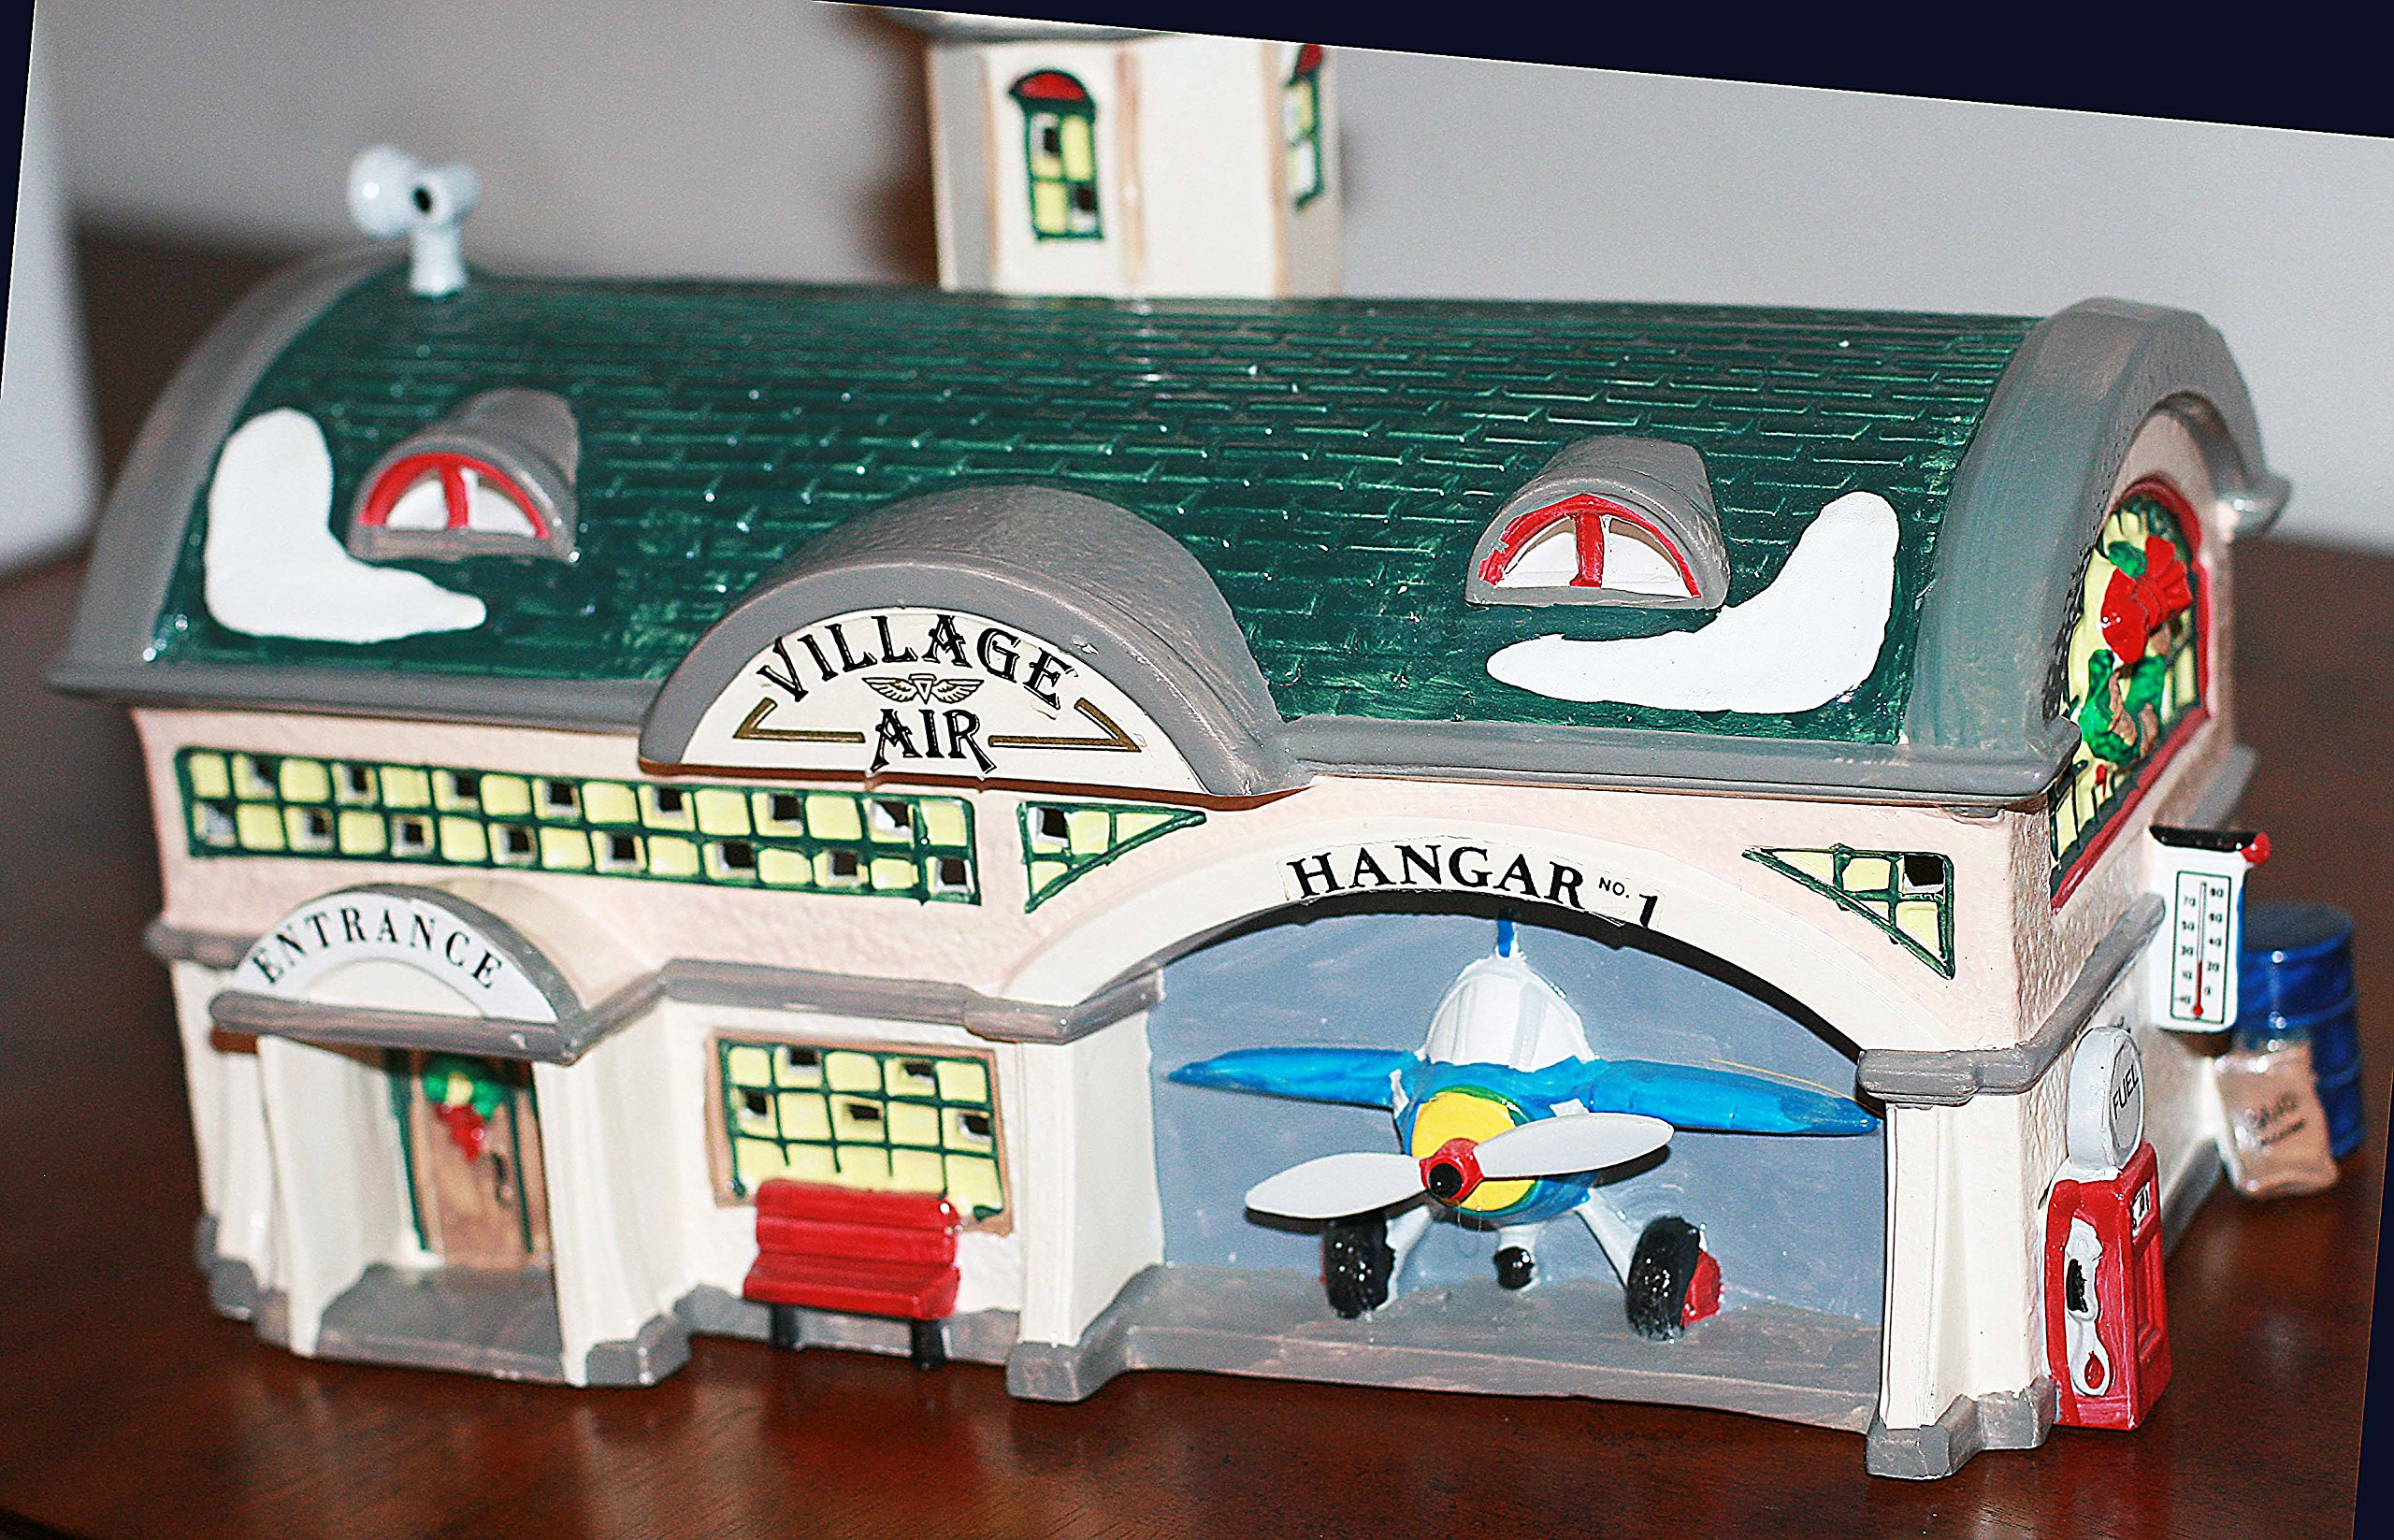 VILLAGE AIR Airport #5439-9 Department 56 SNOW VILLAGE (8 1/2 Inches Tall)